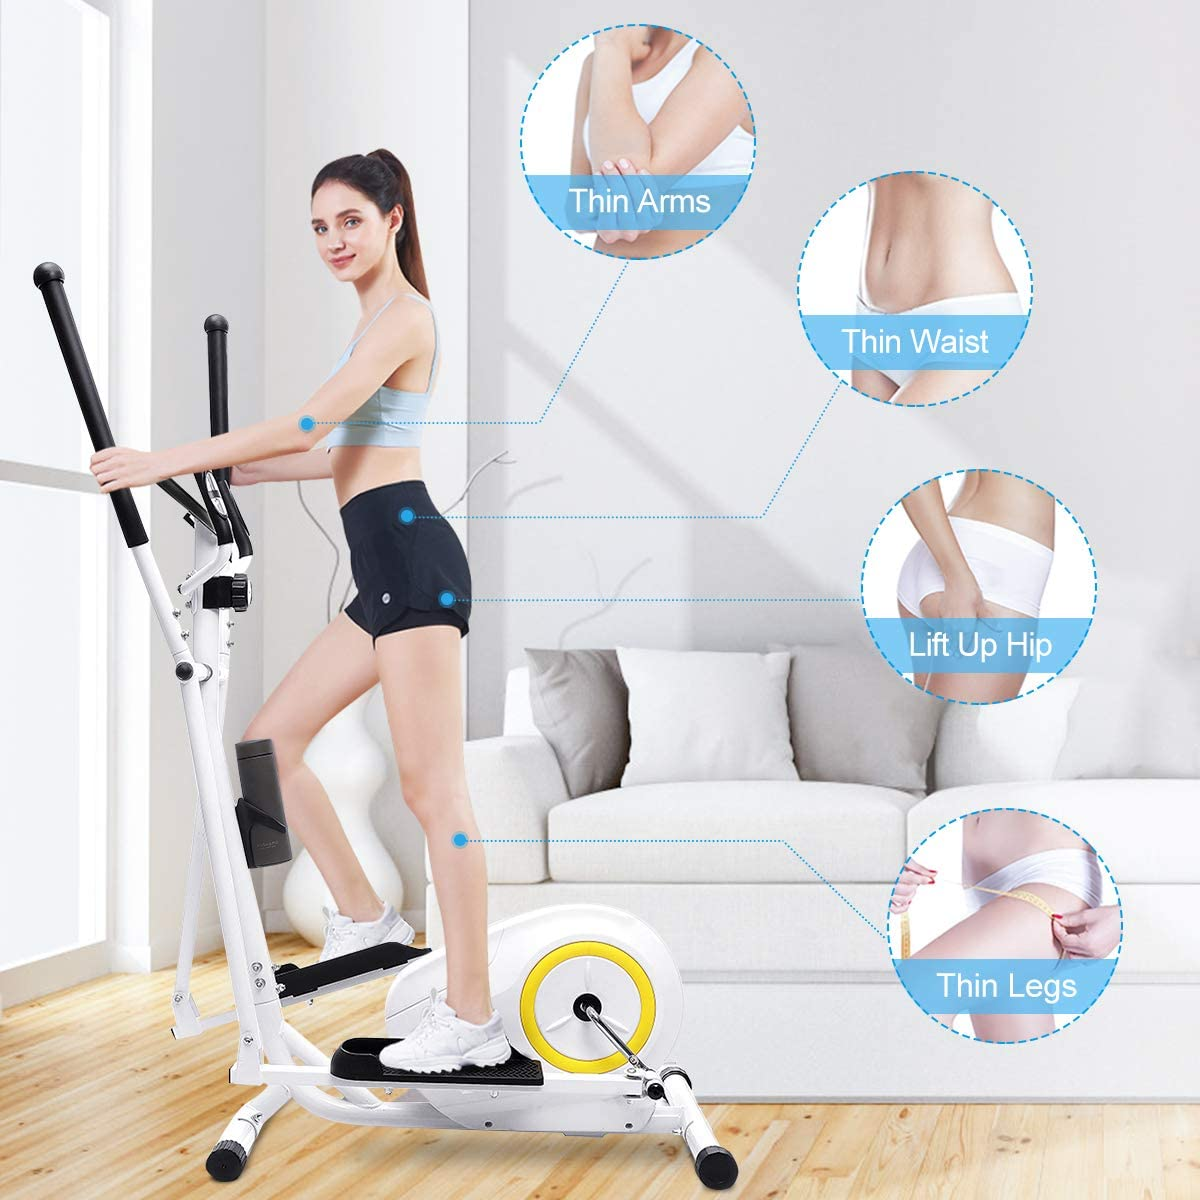 Doufit Elliptical Machine for Home Use, Portable Elliptical Trainer for Home Gym Aerobic Exercise, Cardio Fitness Equipment with LCD Monitor, Adjustable Magnetic Resistance and Free Mat